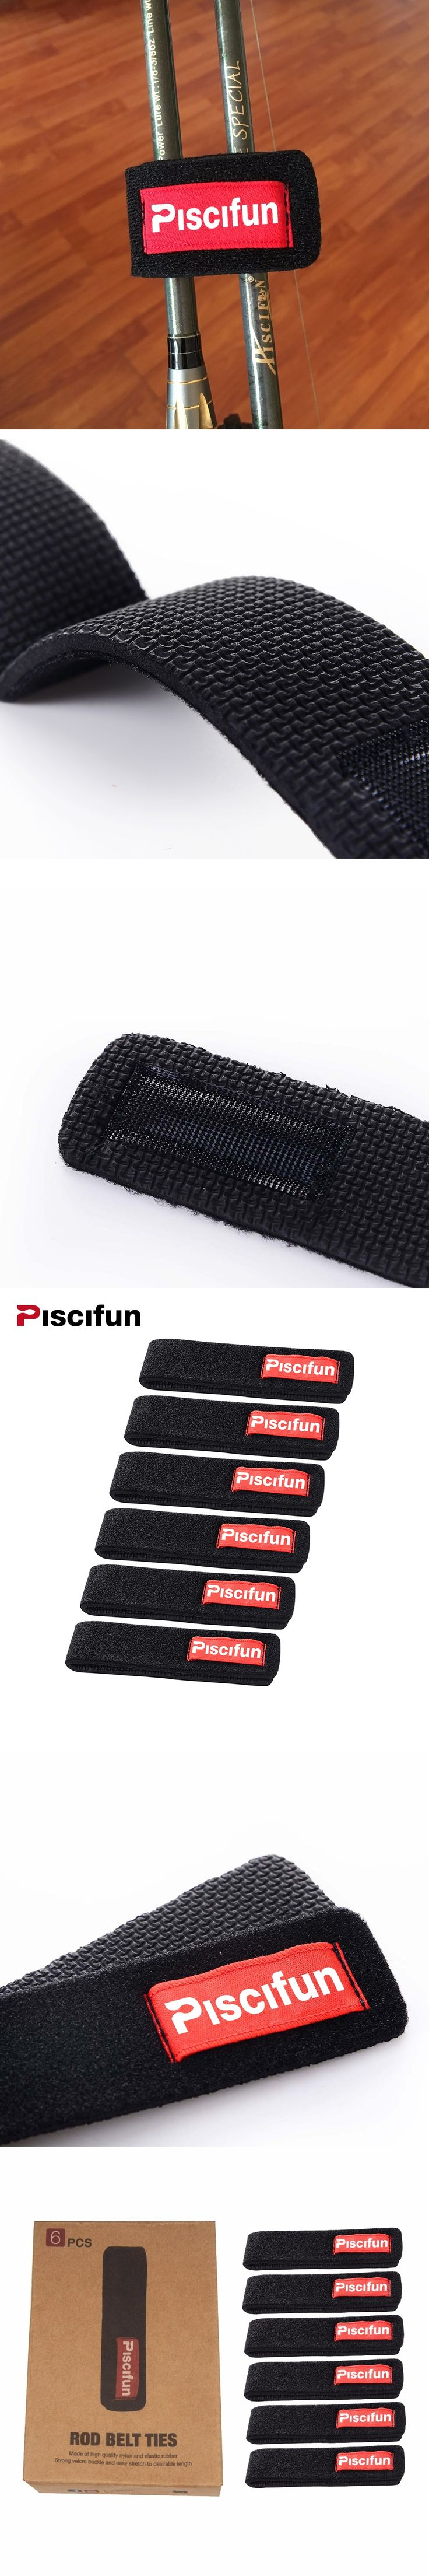 Piscifun 6Pcs/Lot Fishing Rod Tie Fishing Rod Tackle Rod Strap Belt Fishing Rods Holder Wrap Bag Fishing Accessories